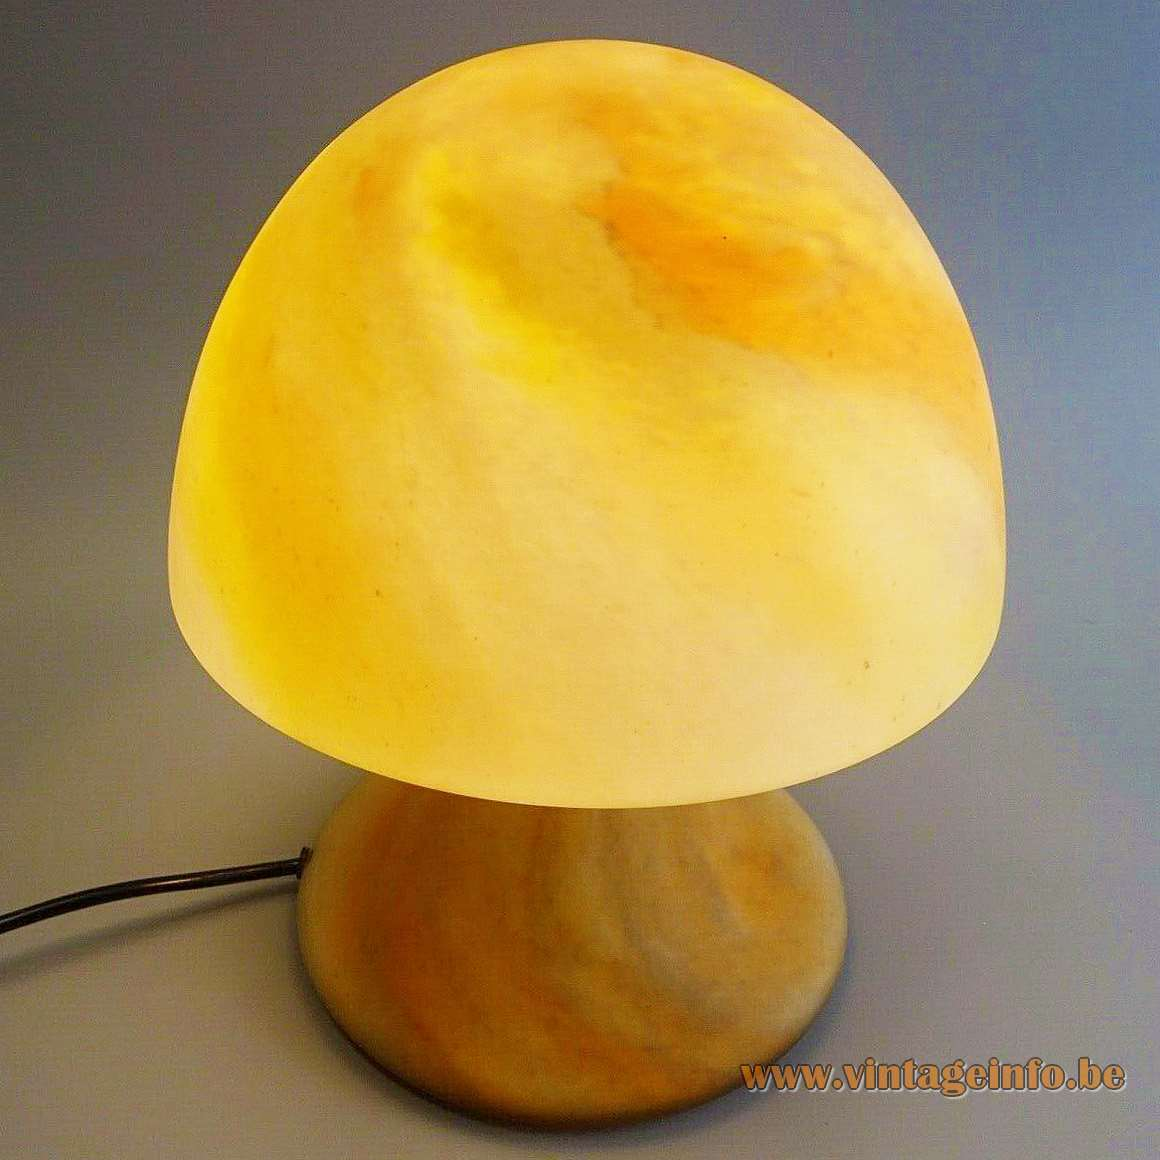 Glashütte Limburg Art Nouveau Style Mushroom Table Lamp 1970s 1980s brown red yellow glass brass Germany